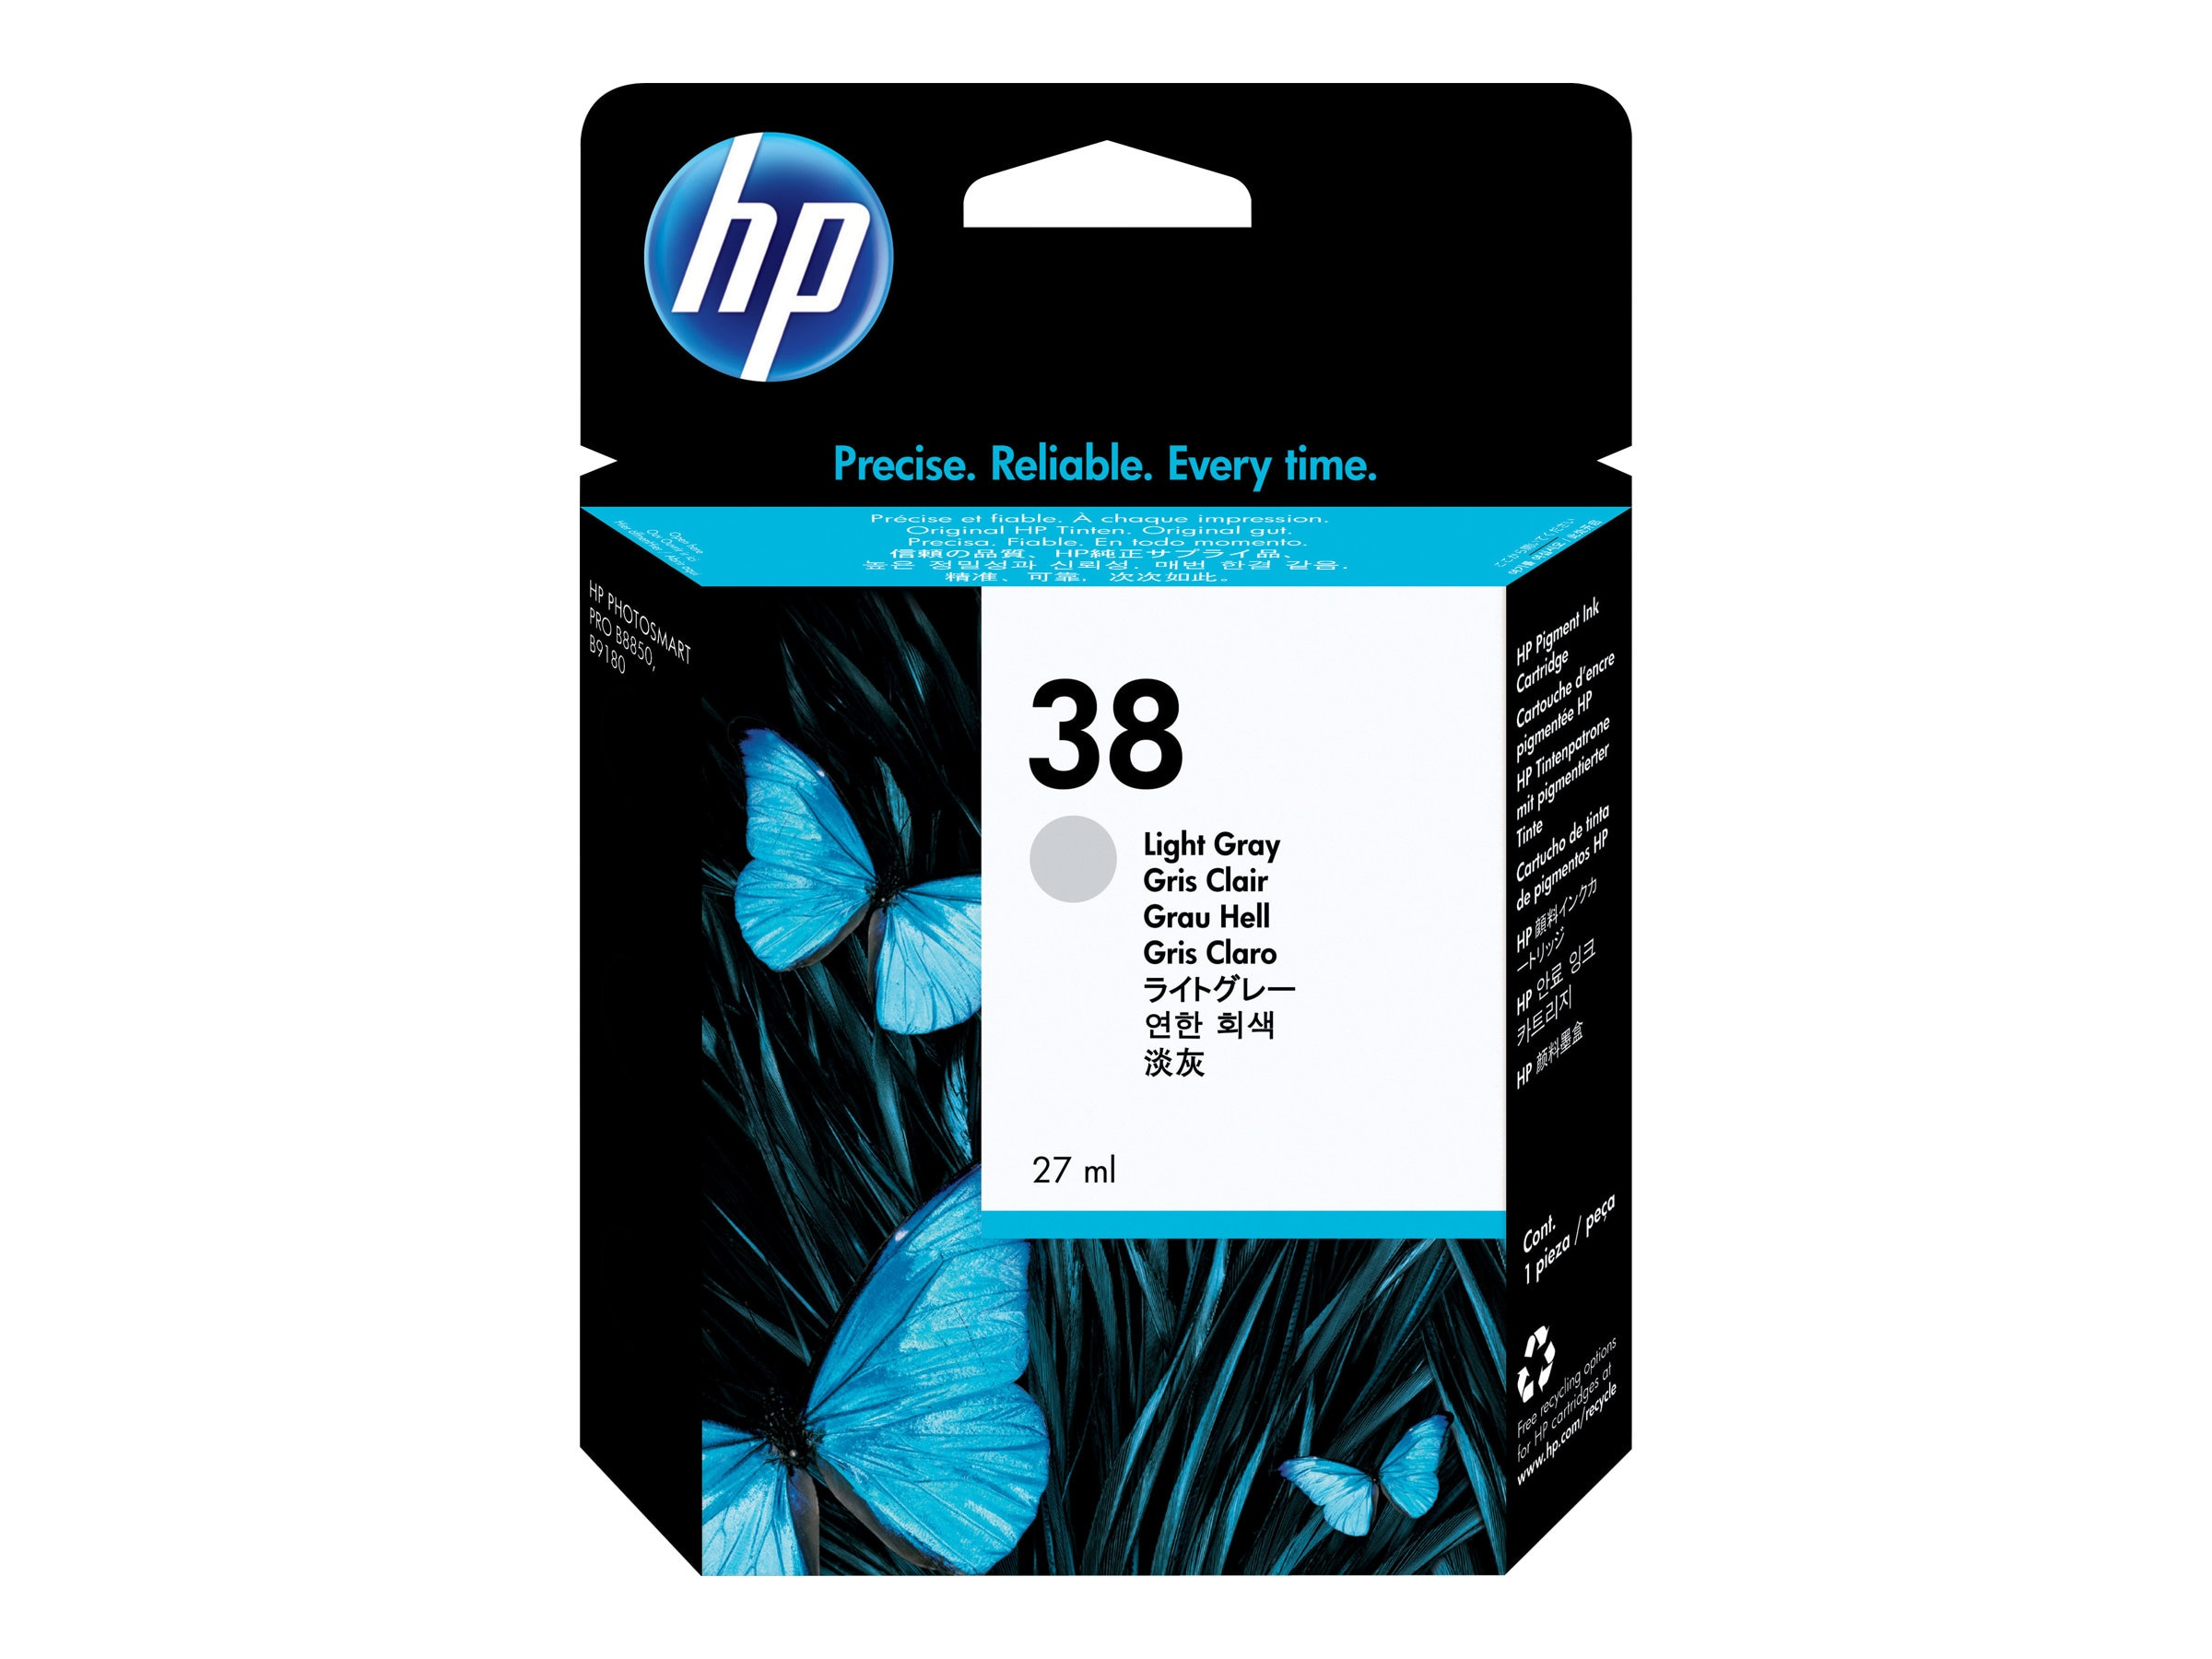 HP 38 (C9414A) Light Gray Pigment Original Ink Cartridge, C9414A, 7192359, Ink Cartridges & Ink Refill Kits